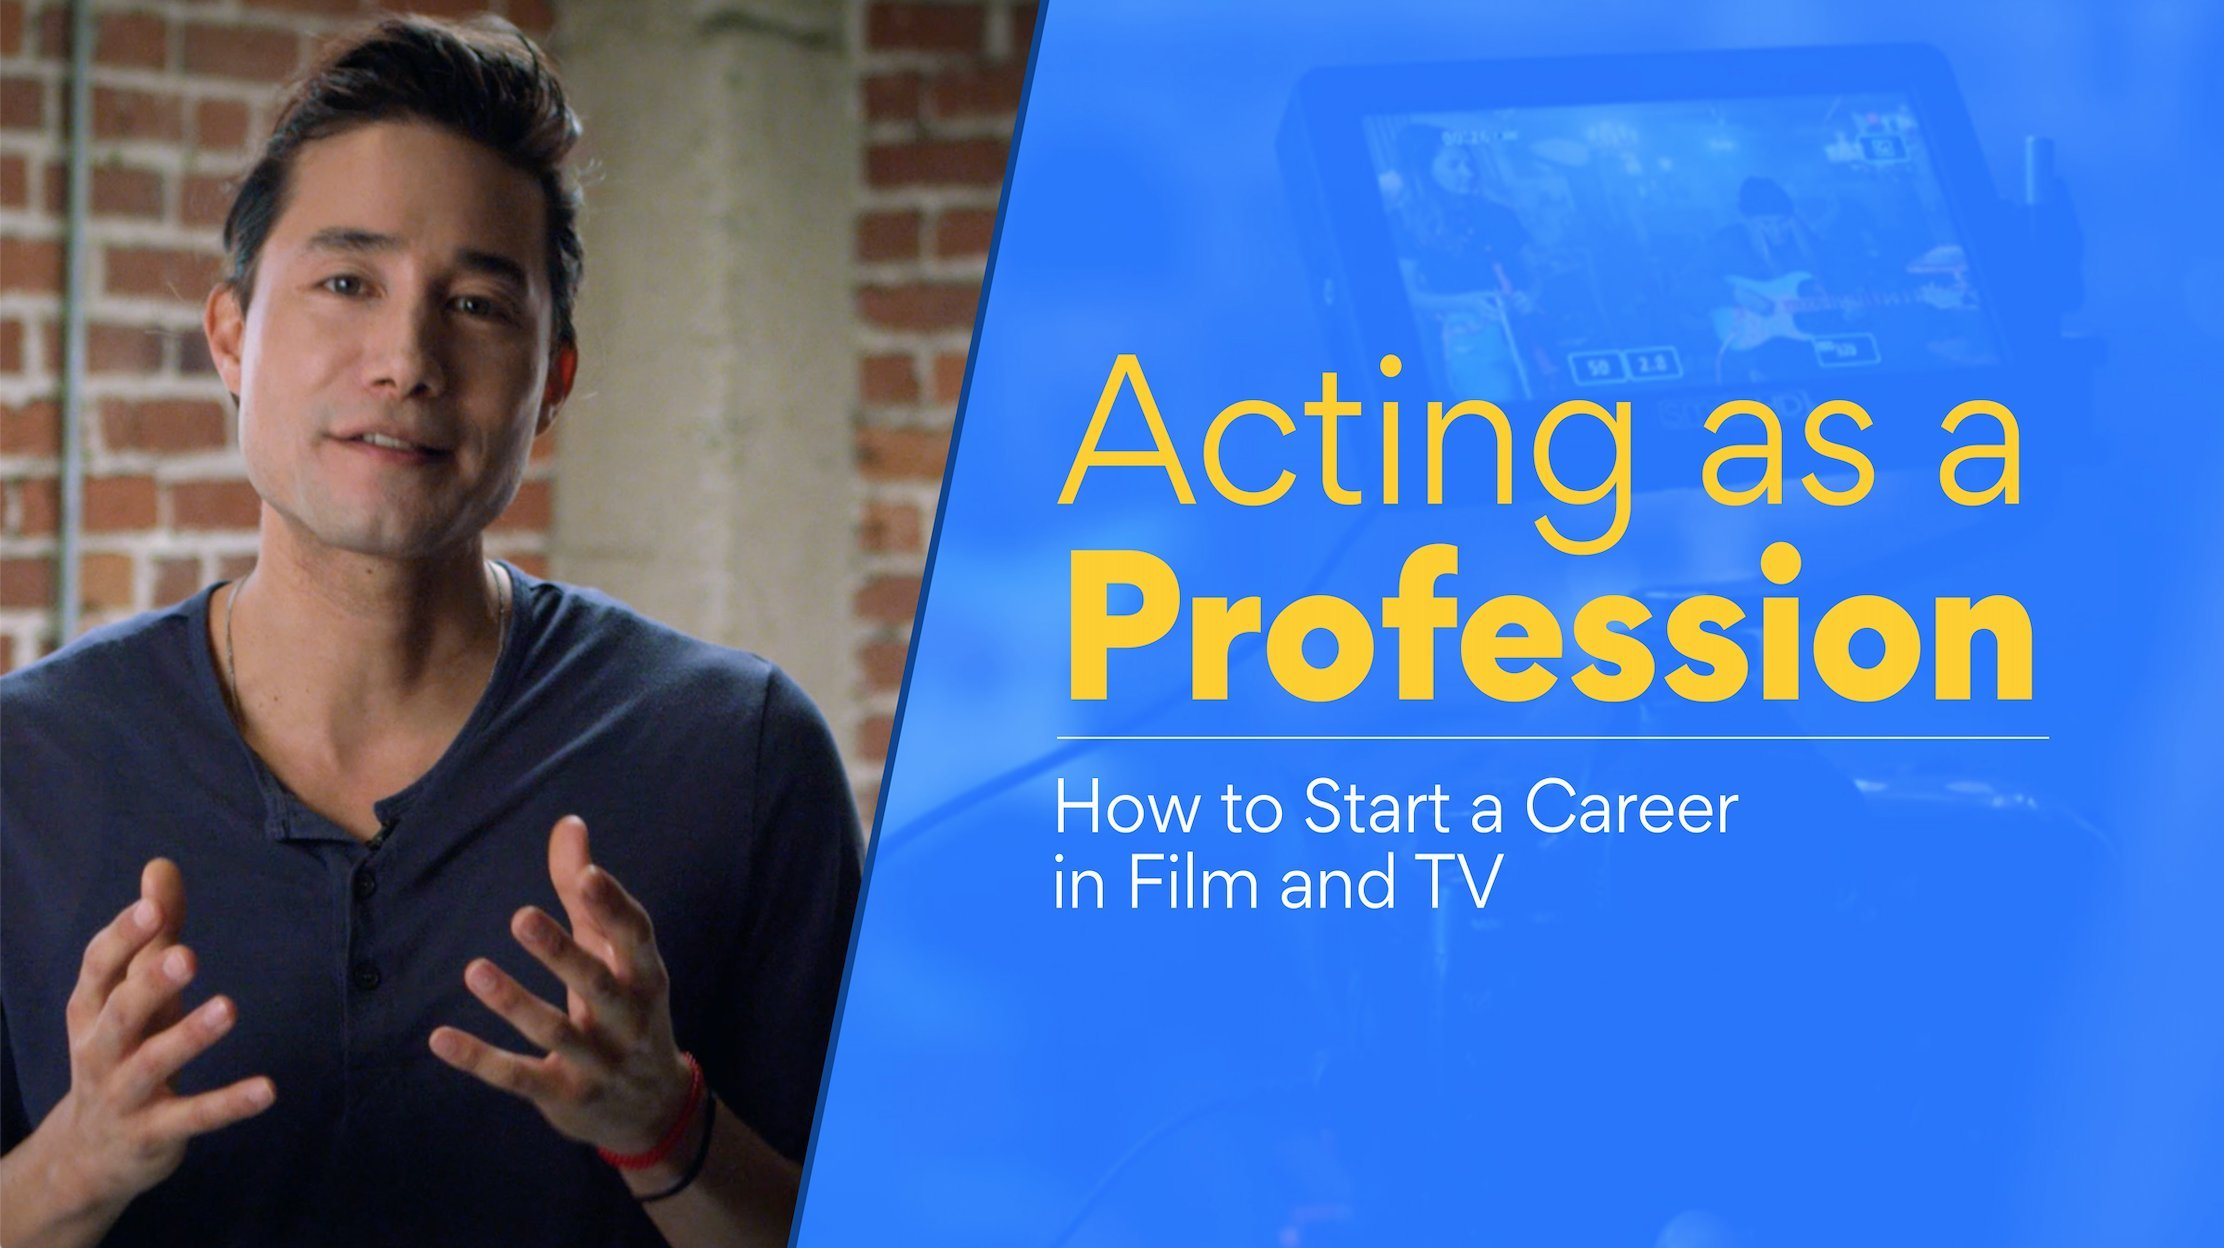 Acting as a Profession: How to Start a Career in Film and TV